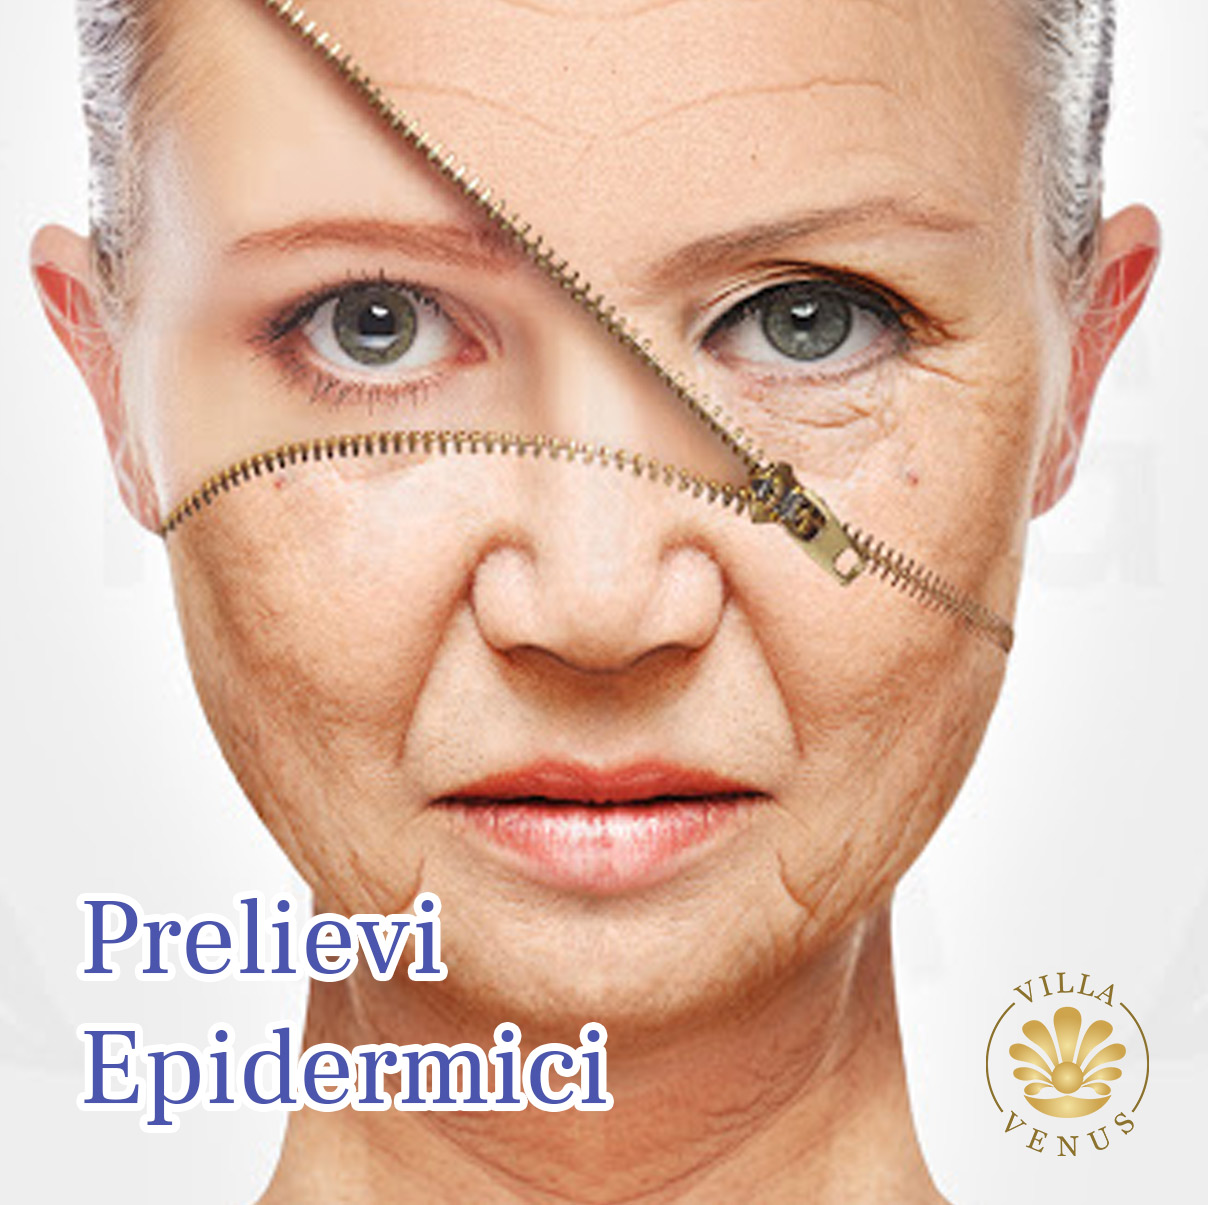 Prelievi Epidermici